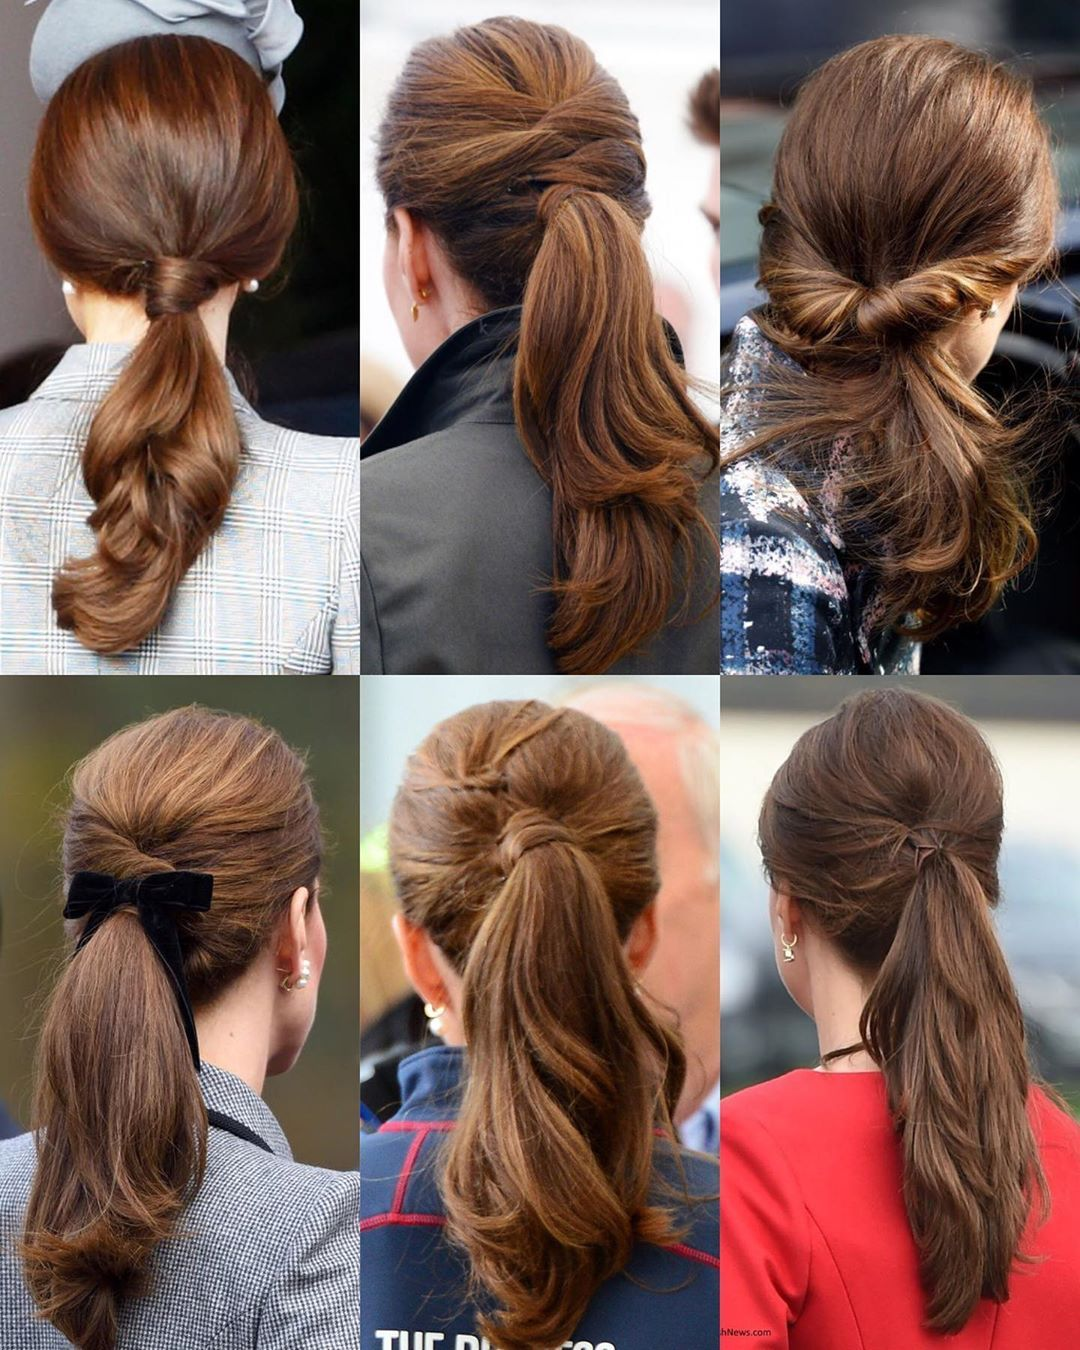 A Look At The Duchess Of Cambridge S Different Hairstyles From Her Elegant Ponytails To Her Many Intricate Up Hair Styles Elegant Ponytail Kate Middleton Hair